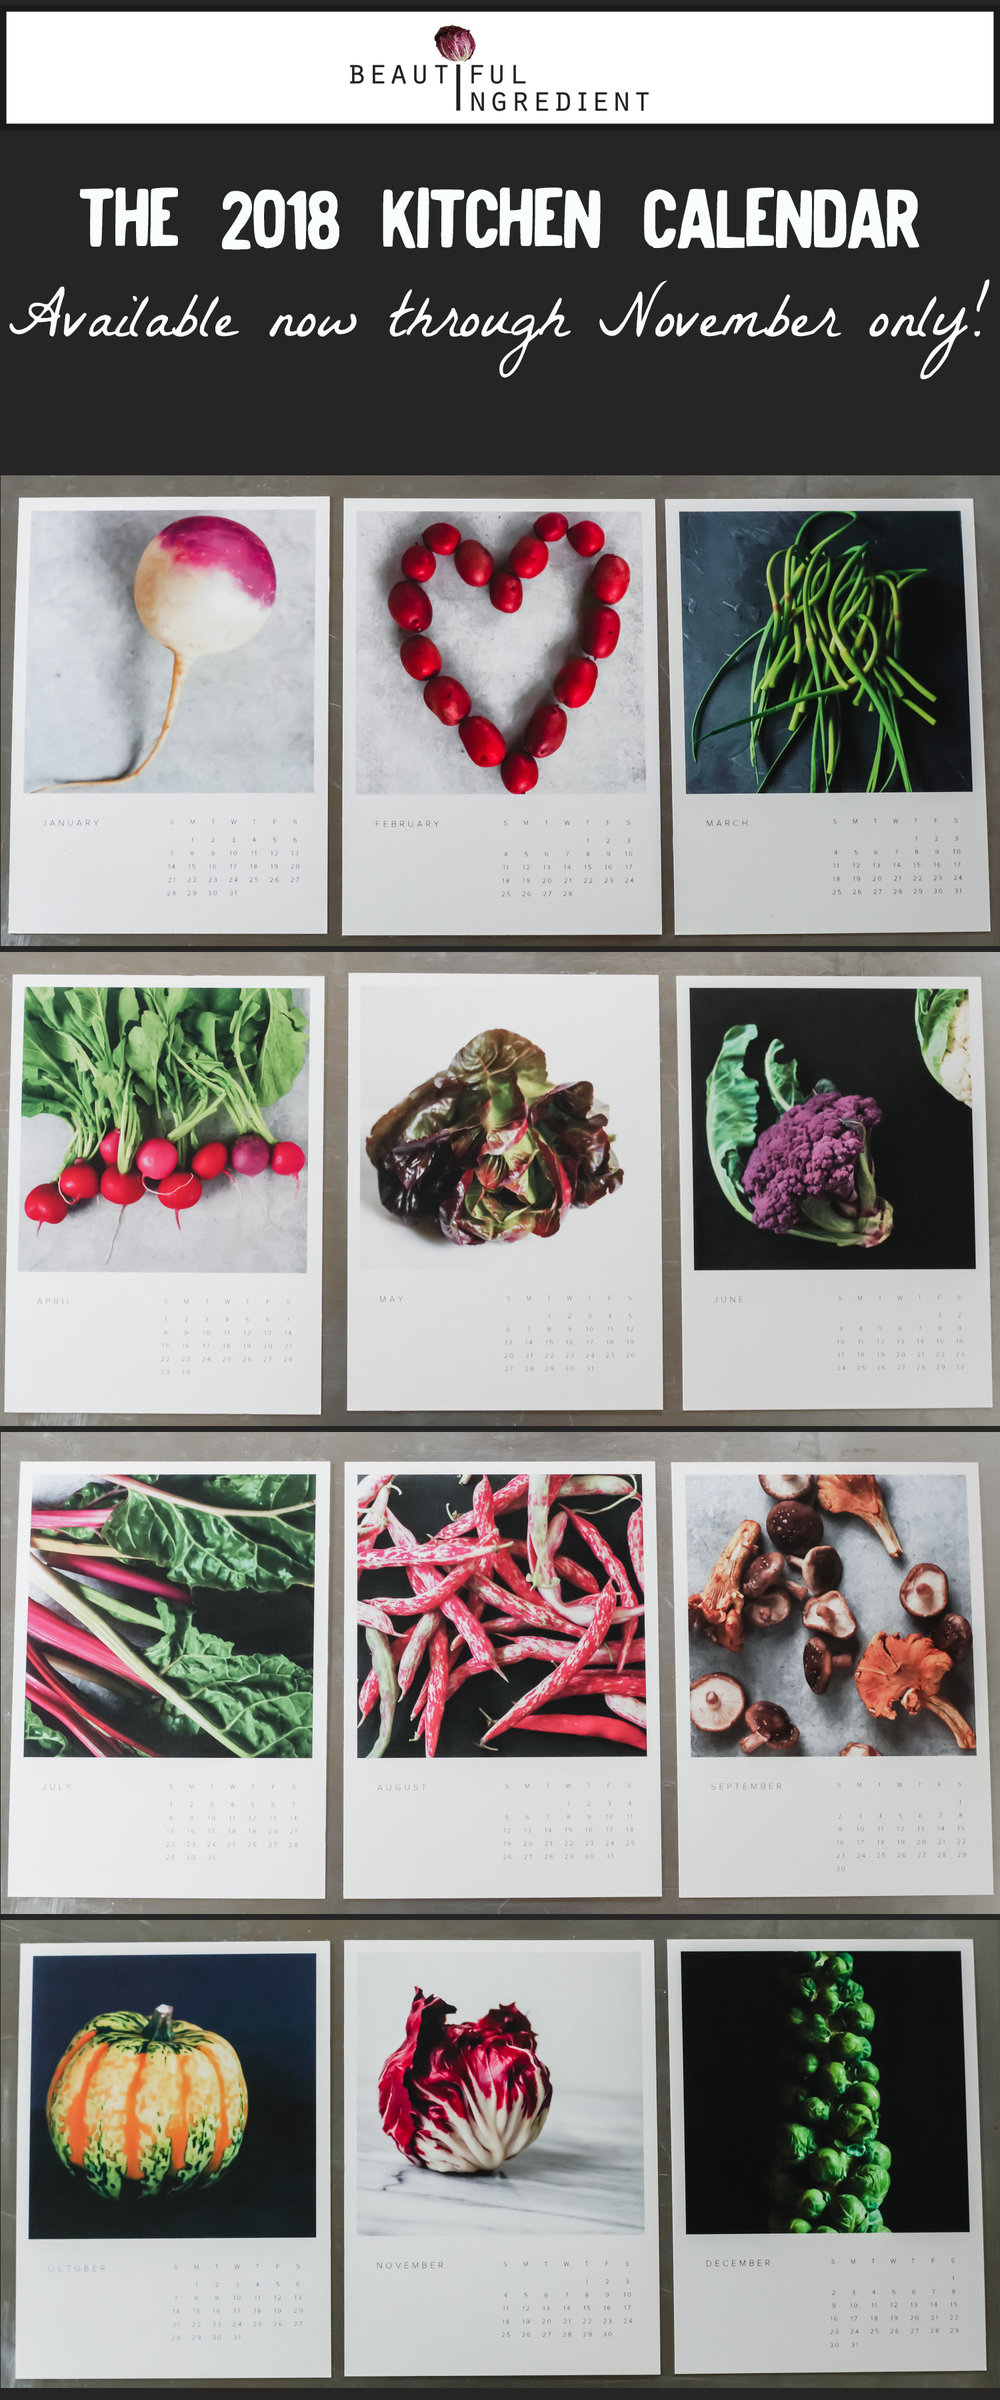 The new 2018 Kitchen Calendar by Beautiful Ingredient